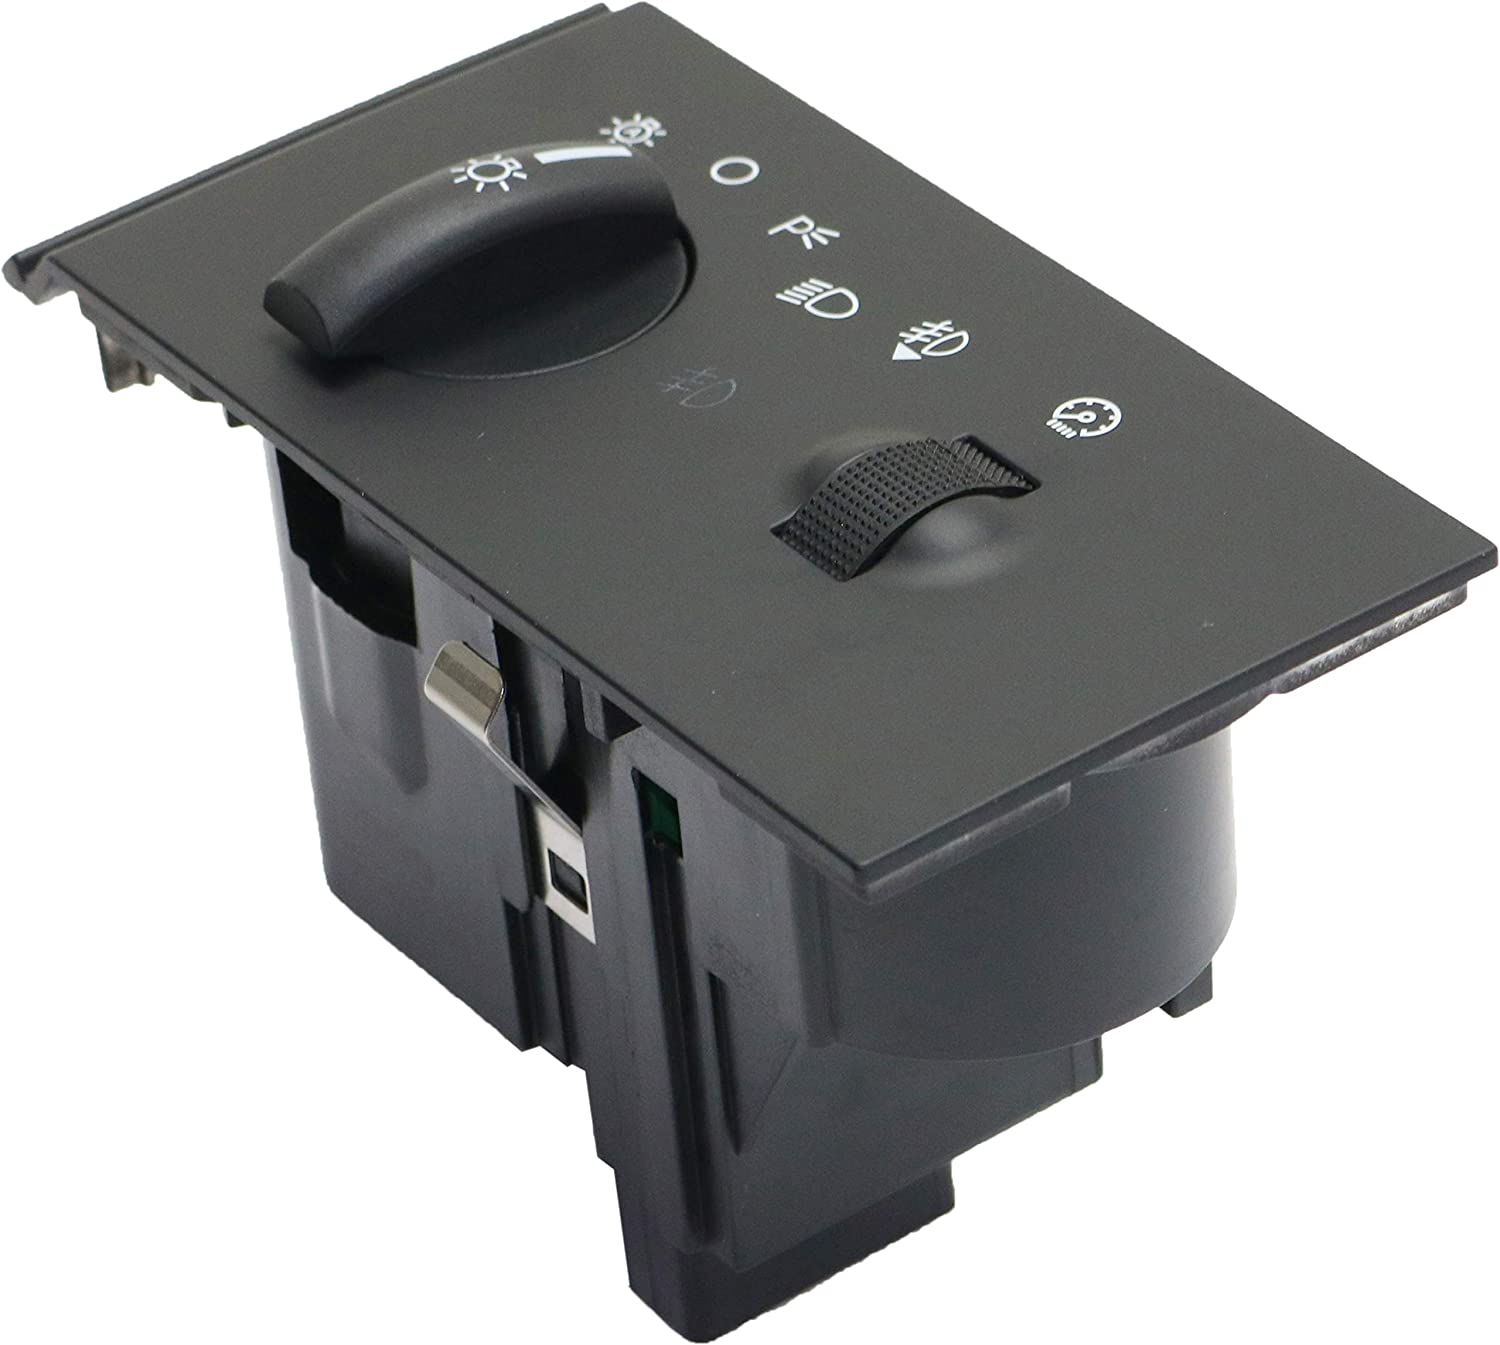 Headlight Switch Compatible With 2005-2007 Ford F-250 F-350 F-450 F-550 Super Duty Blade type 13 Prong Male Terminal